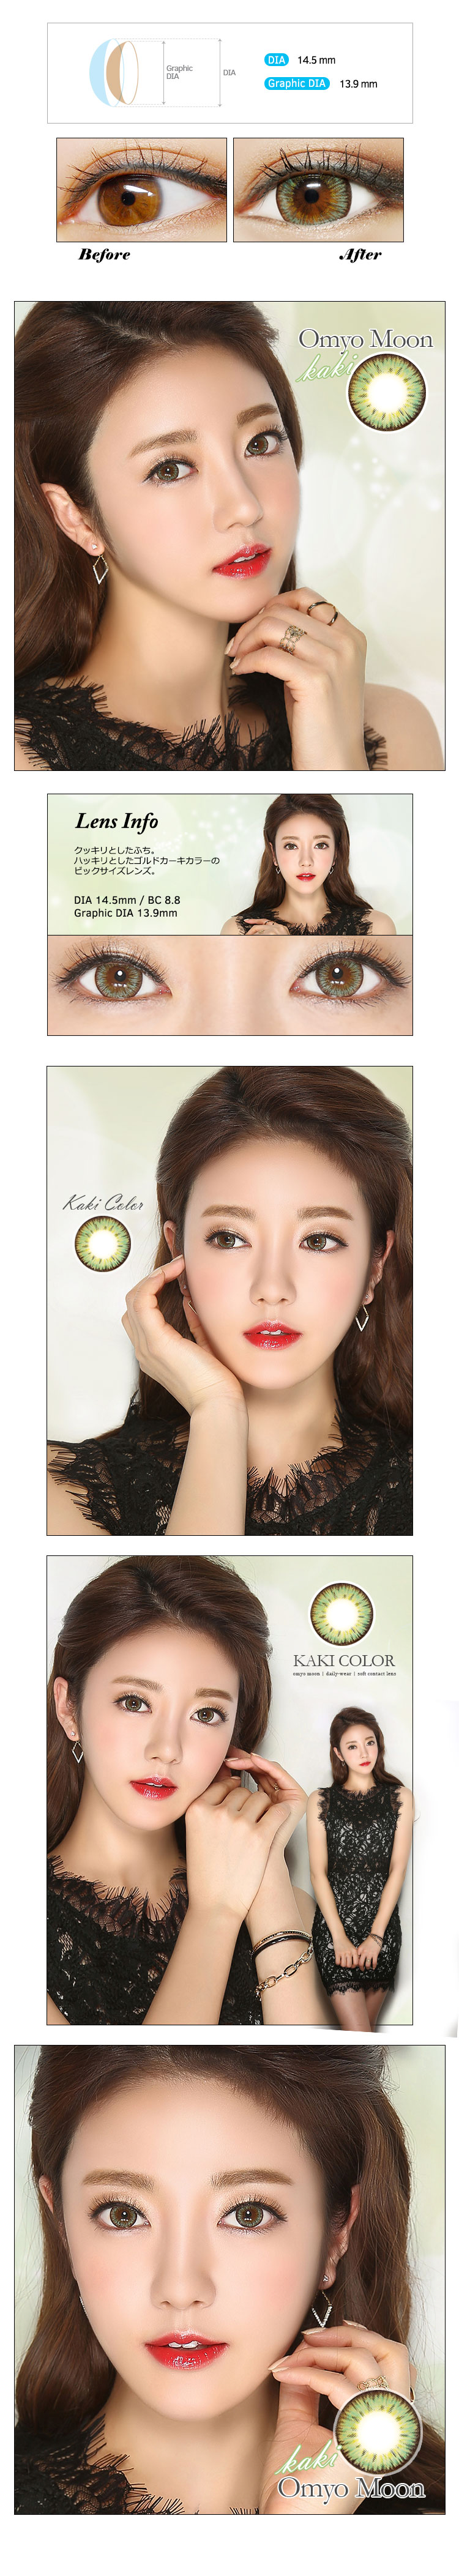 オミョウムーン カーキ (OMYO Moon Khaki Green) DIA 14.5mm (B084)